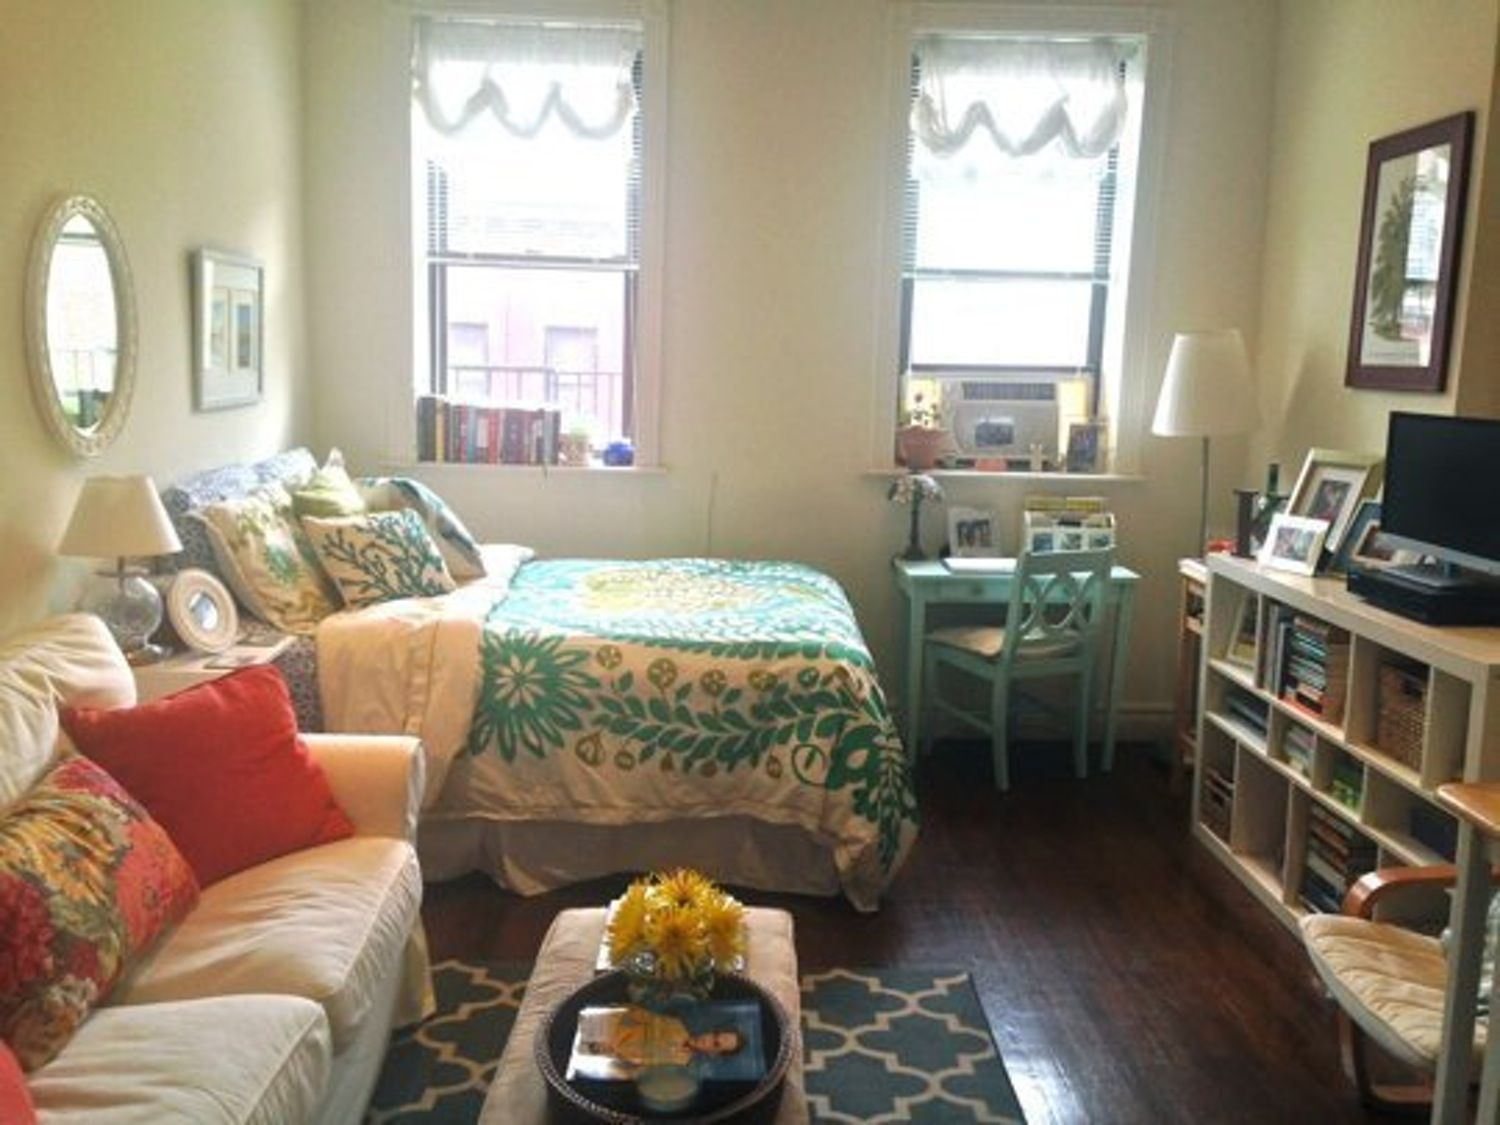 Kristen's Comforting & Cozy Abode — Small Cool Contest ...